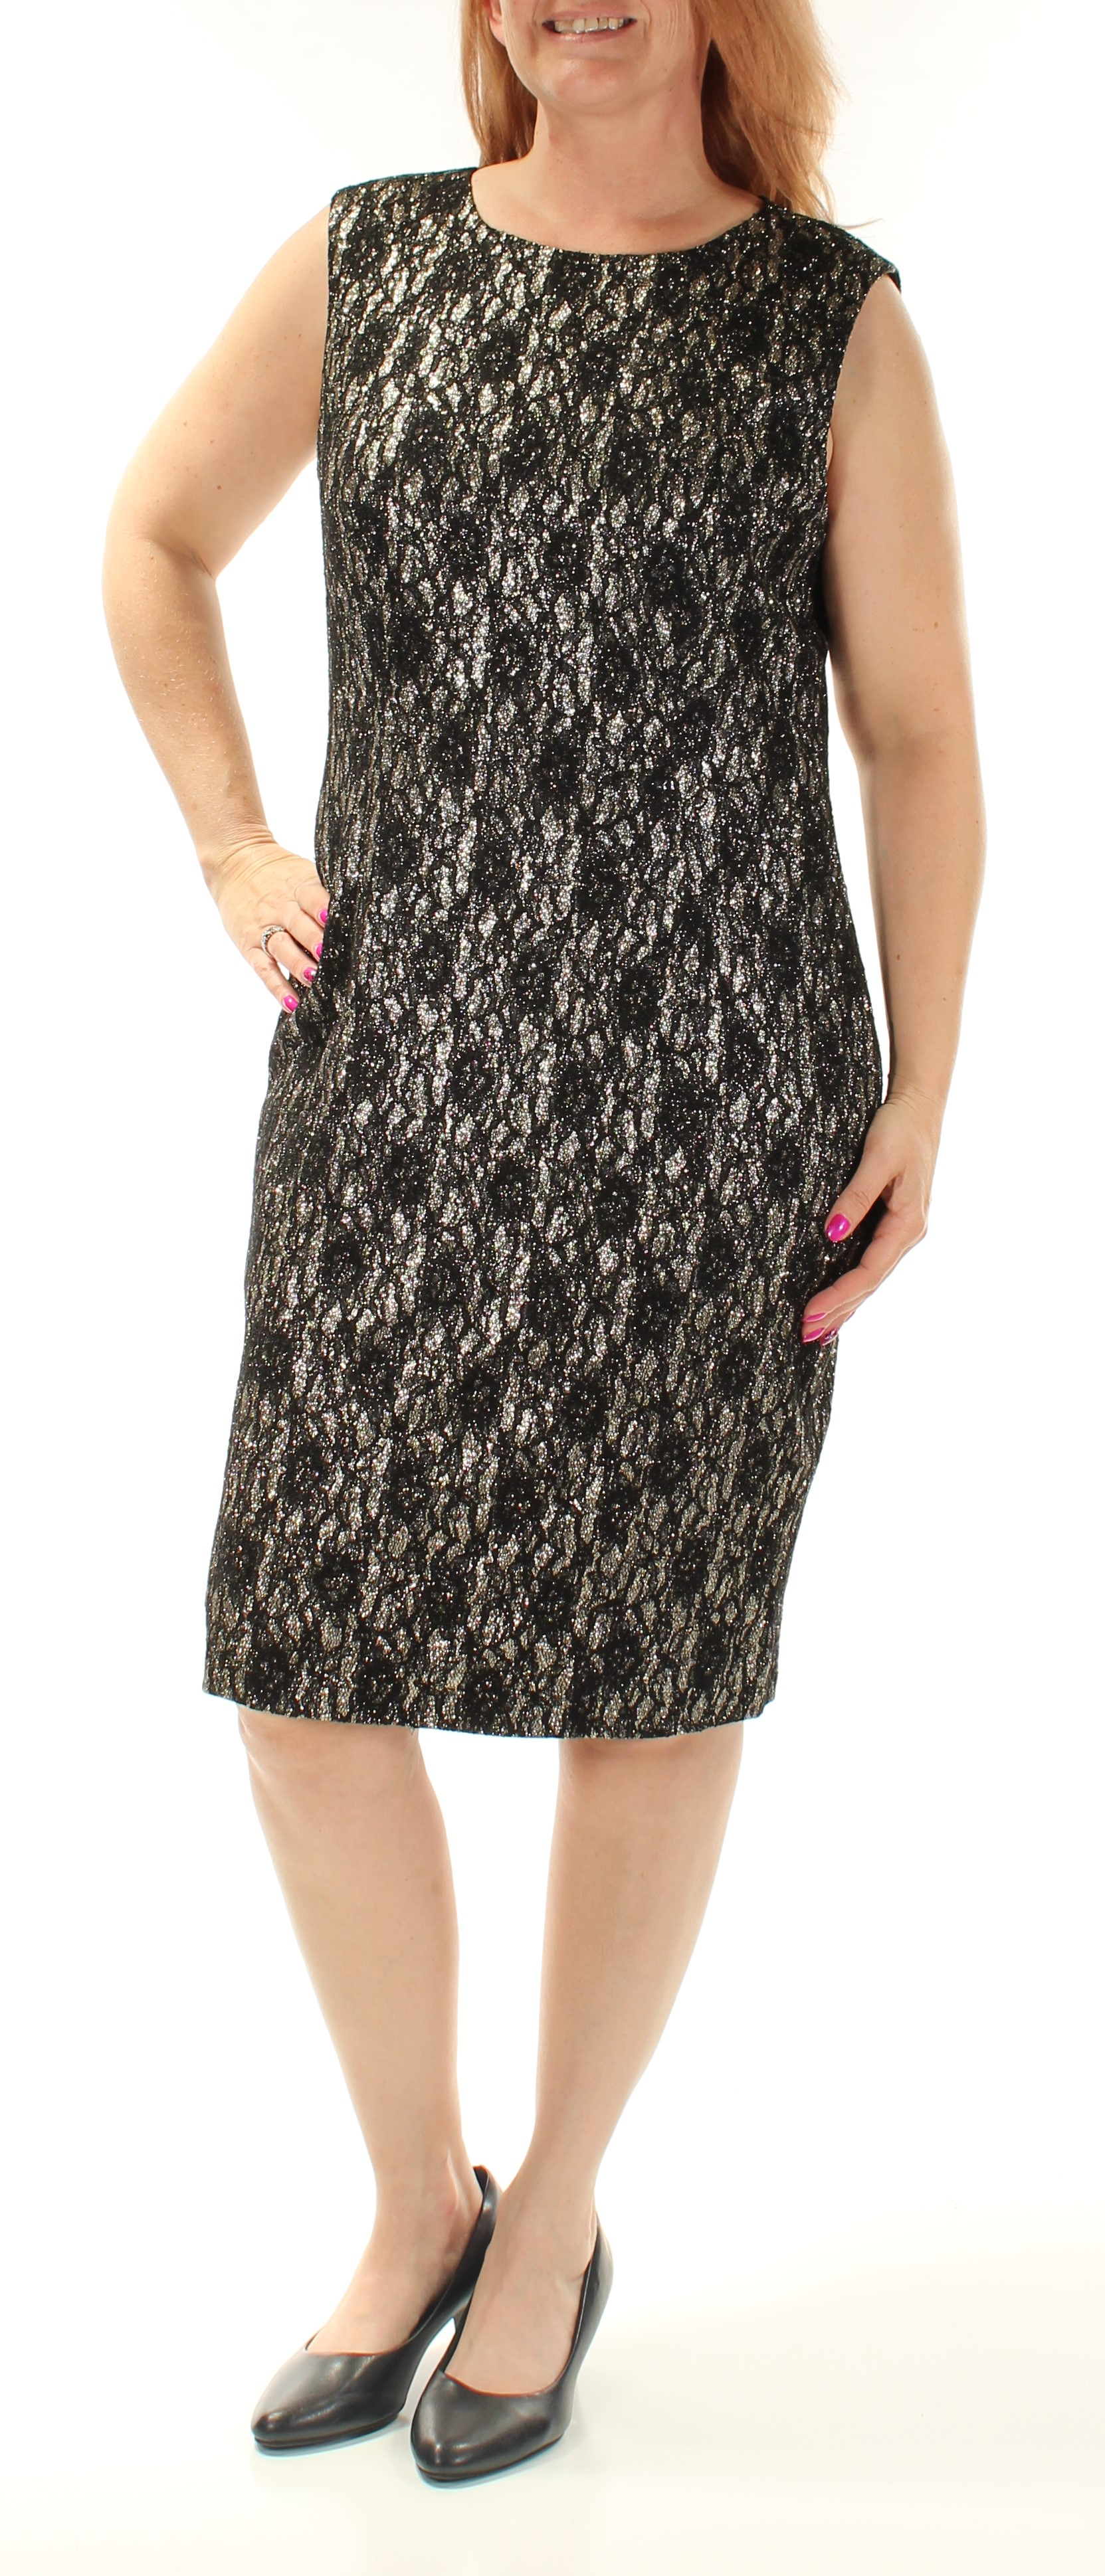 be378693 TAHARI $138 Womens New 1428 Gold Lace Glitter Sheath Dress B+B ...